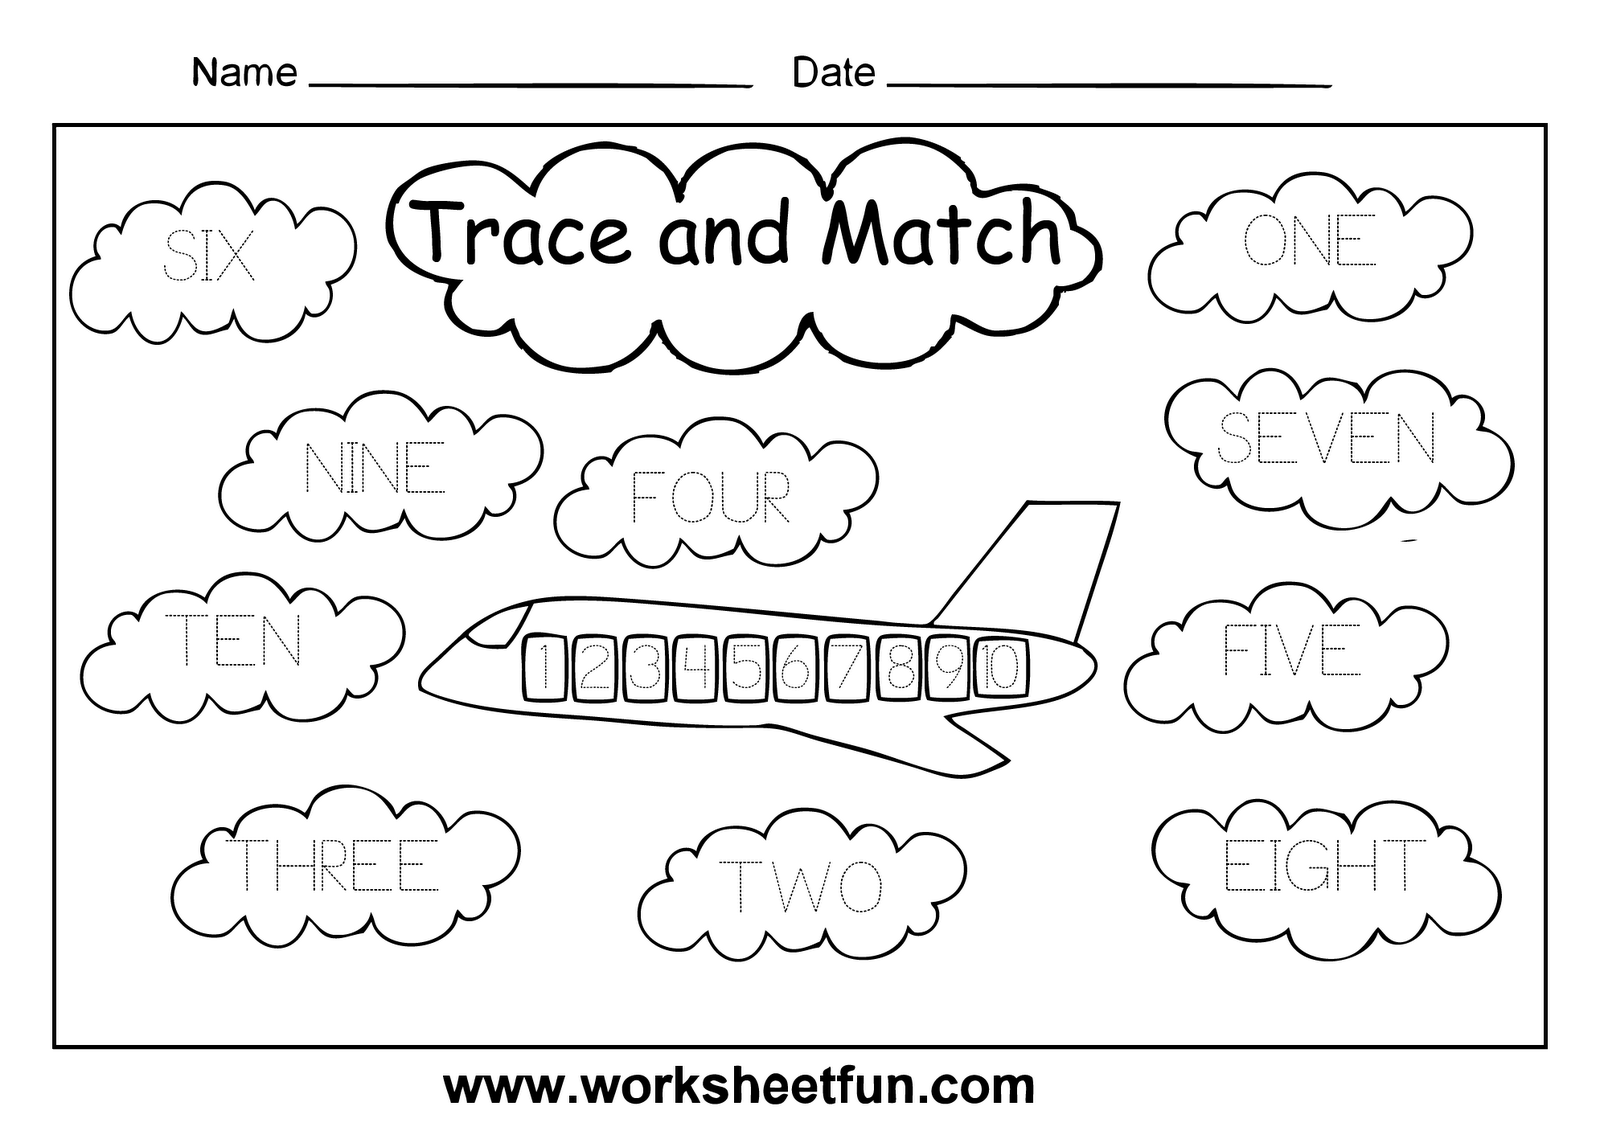 Weirdmailus  Inspiring Worksheet Numbers    Reocurent With Remarkable Free Printable Science Worksheets For Kindergarten Besides Prodigal Son Worksheet Furthermore Prime Factorization Worksheet Th Grade With Appealing Fraction Decimal Conversion Worksheet Also Sun Worksheets For First Grade In Addition Paragraph Outline Worksheet And Cut And Paste Number Worksheets As Well As Printable Money Worksheets Nd Grade Additionally Math Substitution Worksheet From Reocurentcom With Weirdmailus  Remarkable Worksheet Numbers    Reocurent With Appealing Free Printable Science Worksheets For Kindergarten Besides Prodigal Son Worksheet Furthermore Prime Factorization Worksheet Th Grade And Inspiring Fraction Decimal Conversion Worksheet Also Sun Worksheets For First Grade In Addition Paragraph Outline Worksheet From Reocurentcom